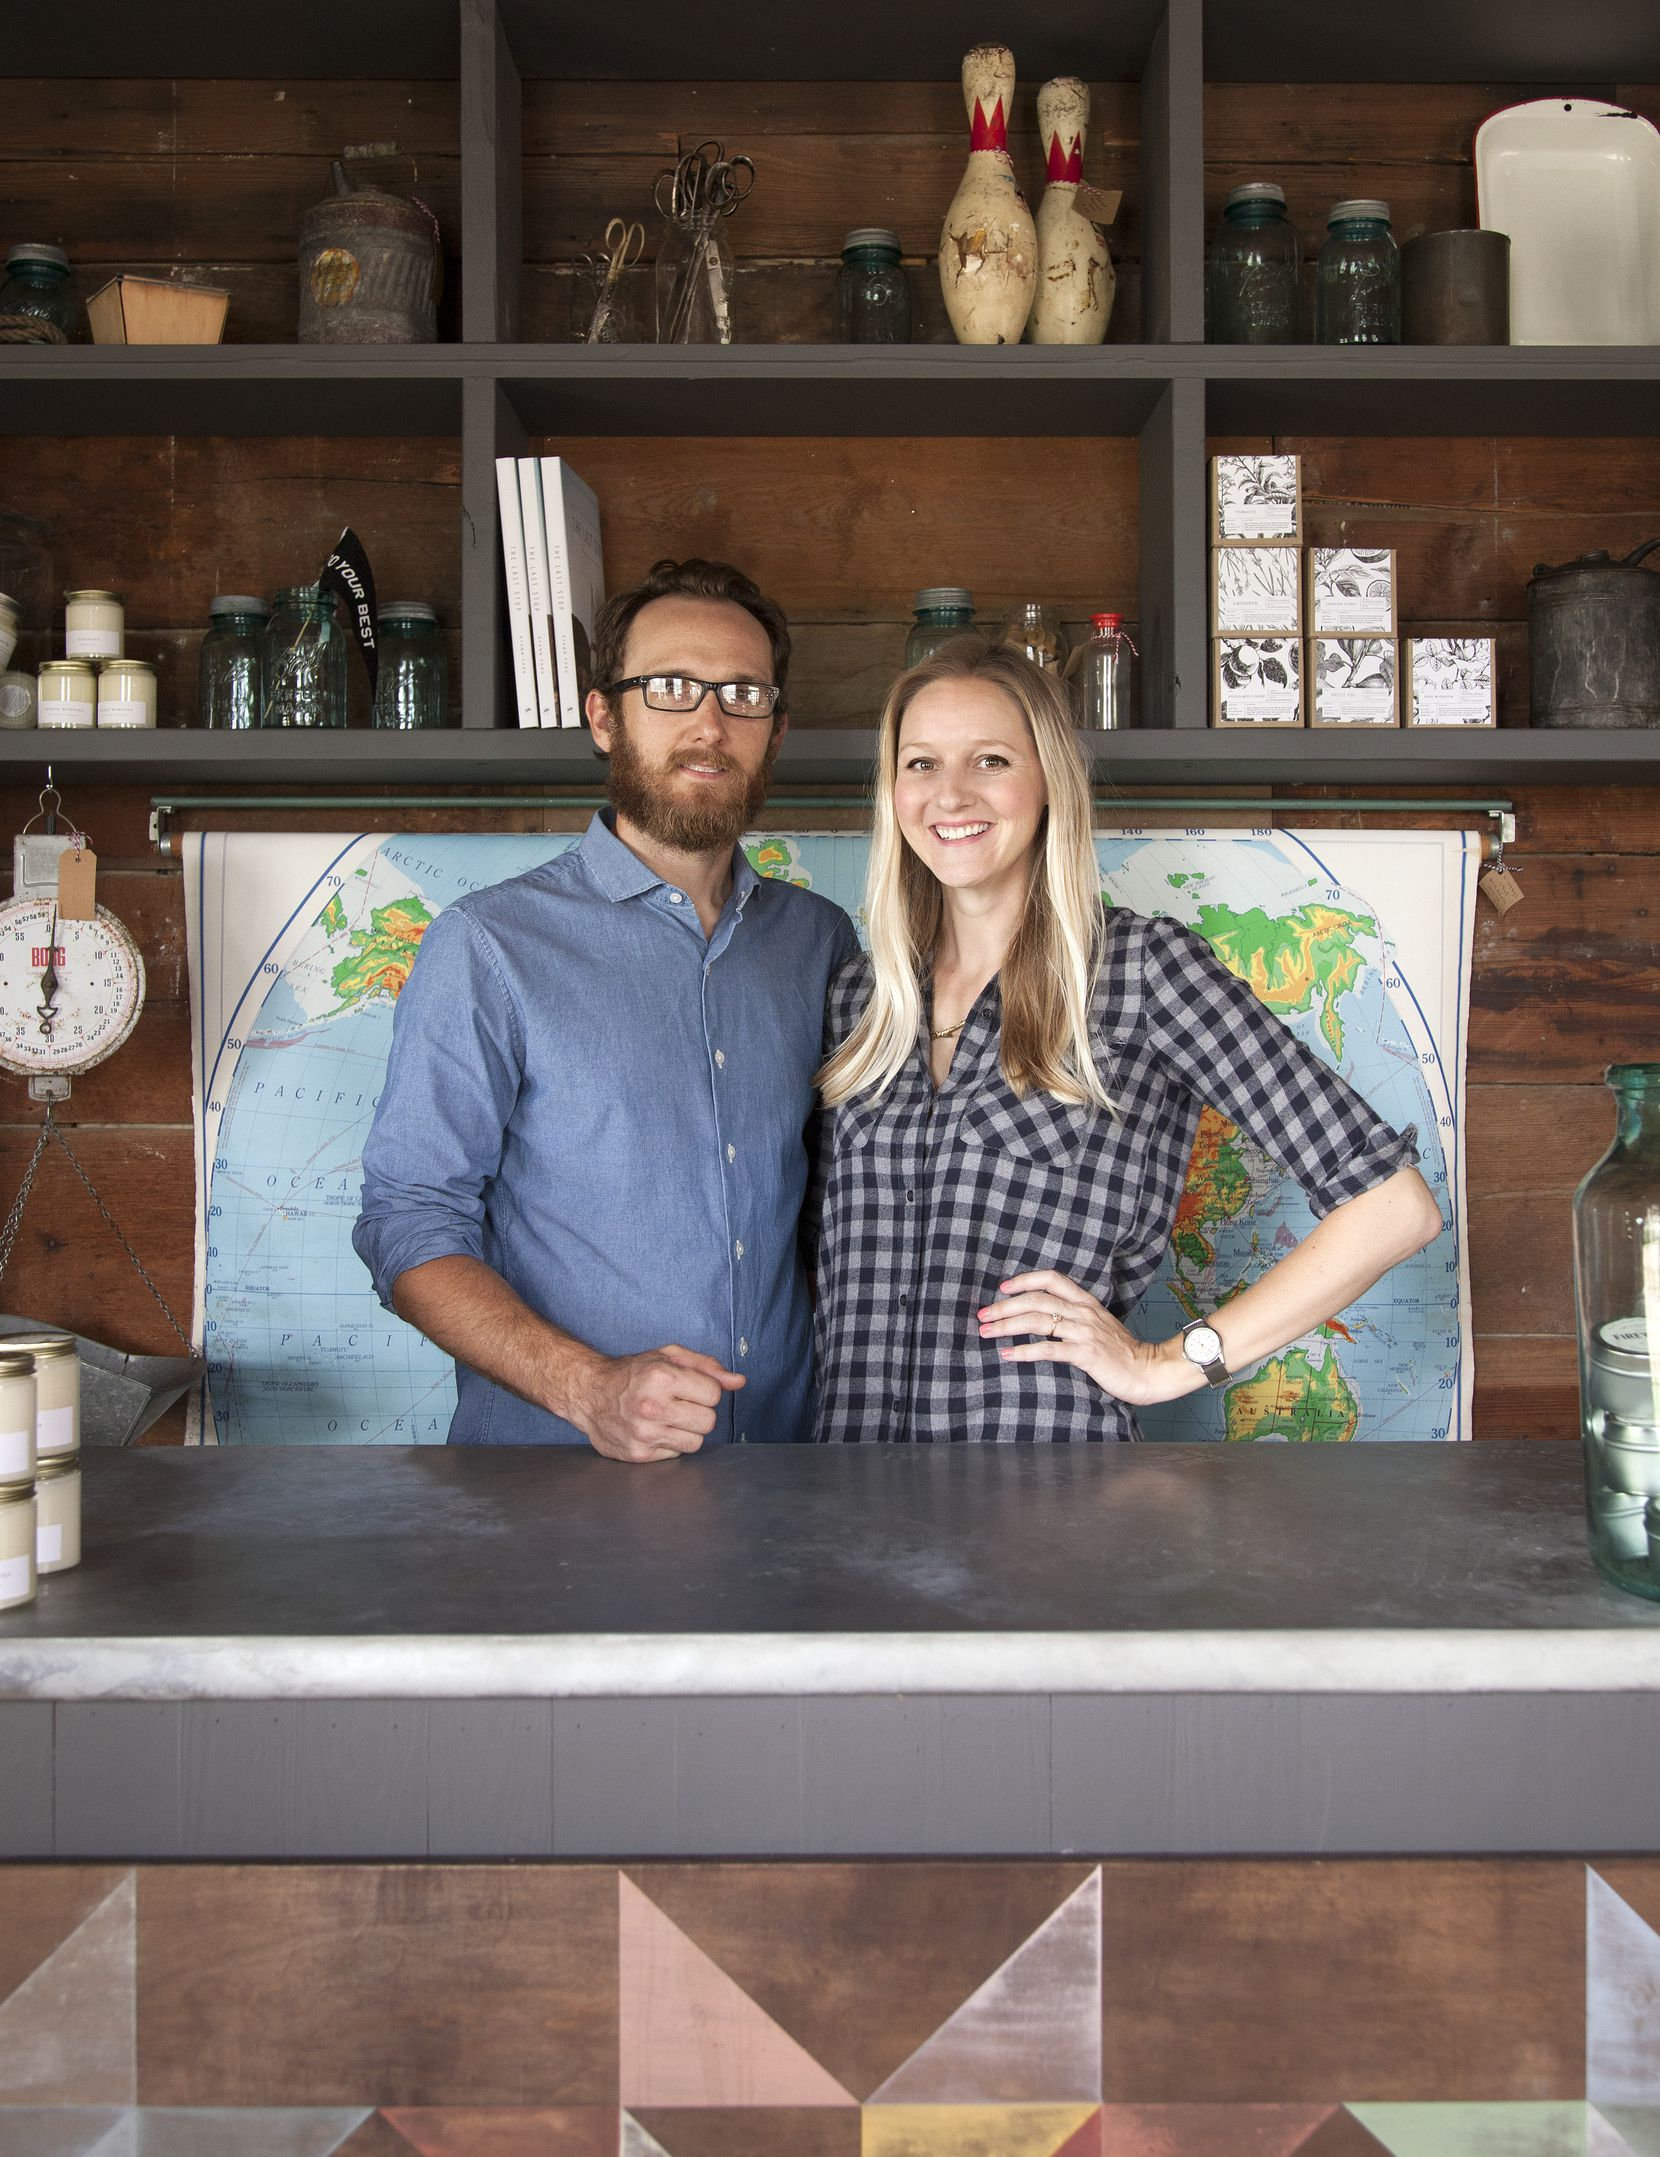 Nick Mosley and Ryann Ford, co-owners of Townsend Provisions in Round Top